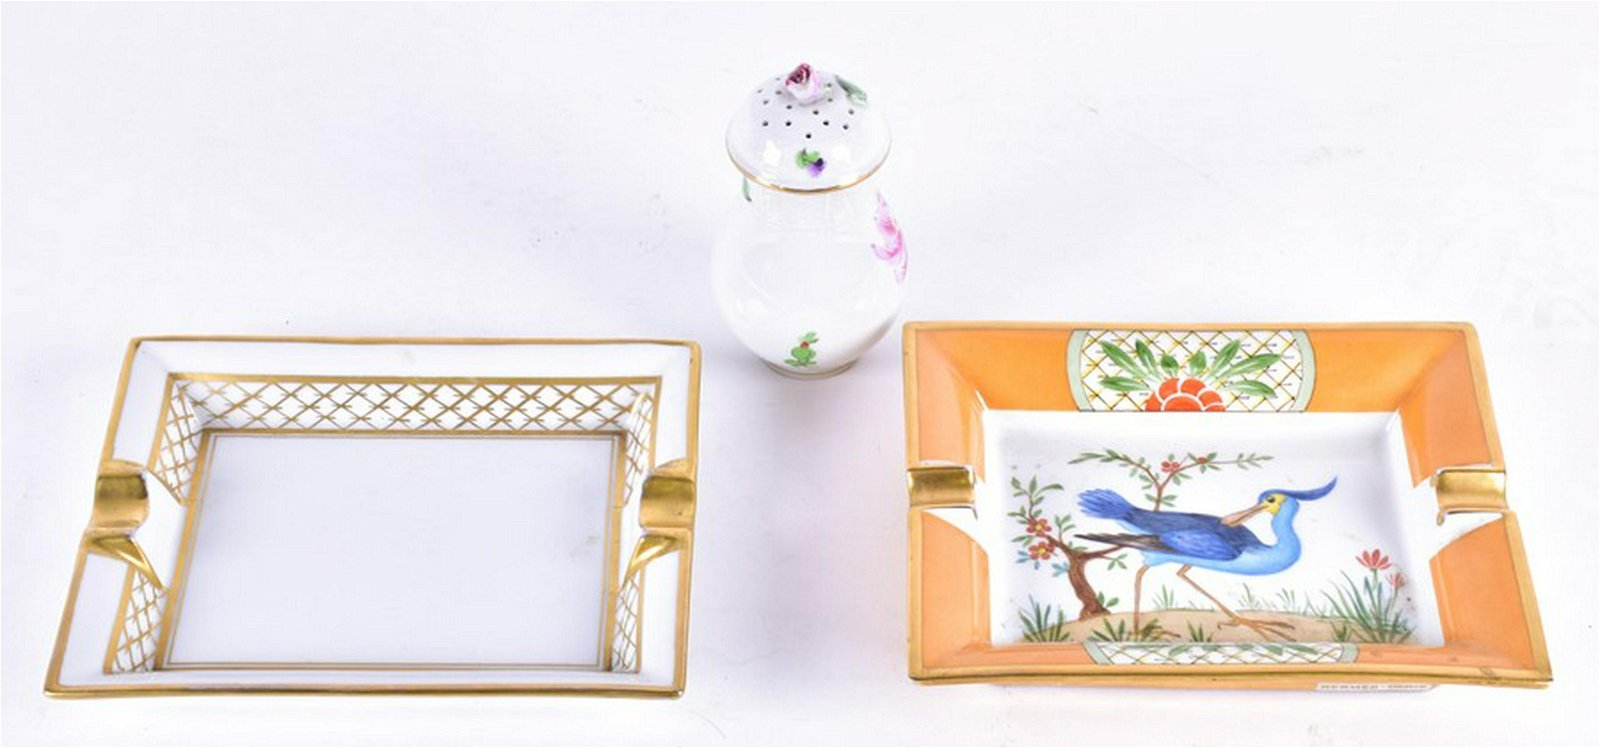 A Hermes rectangular ashtray decorated with a mythical